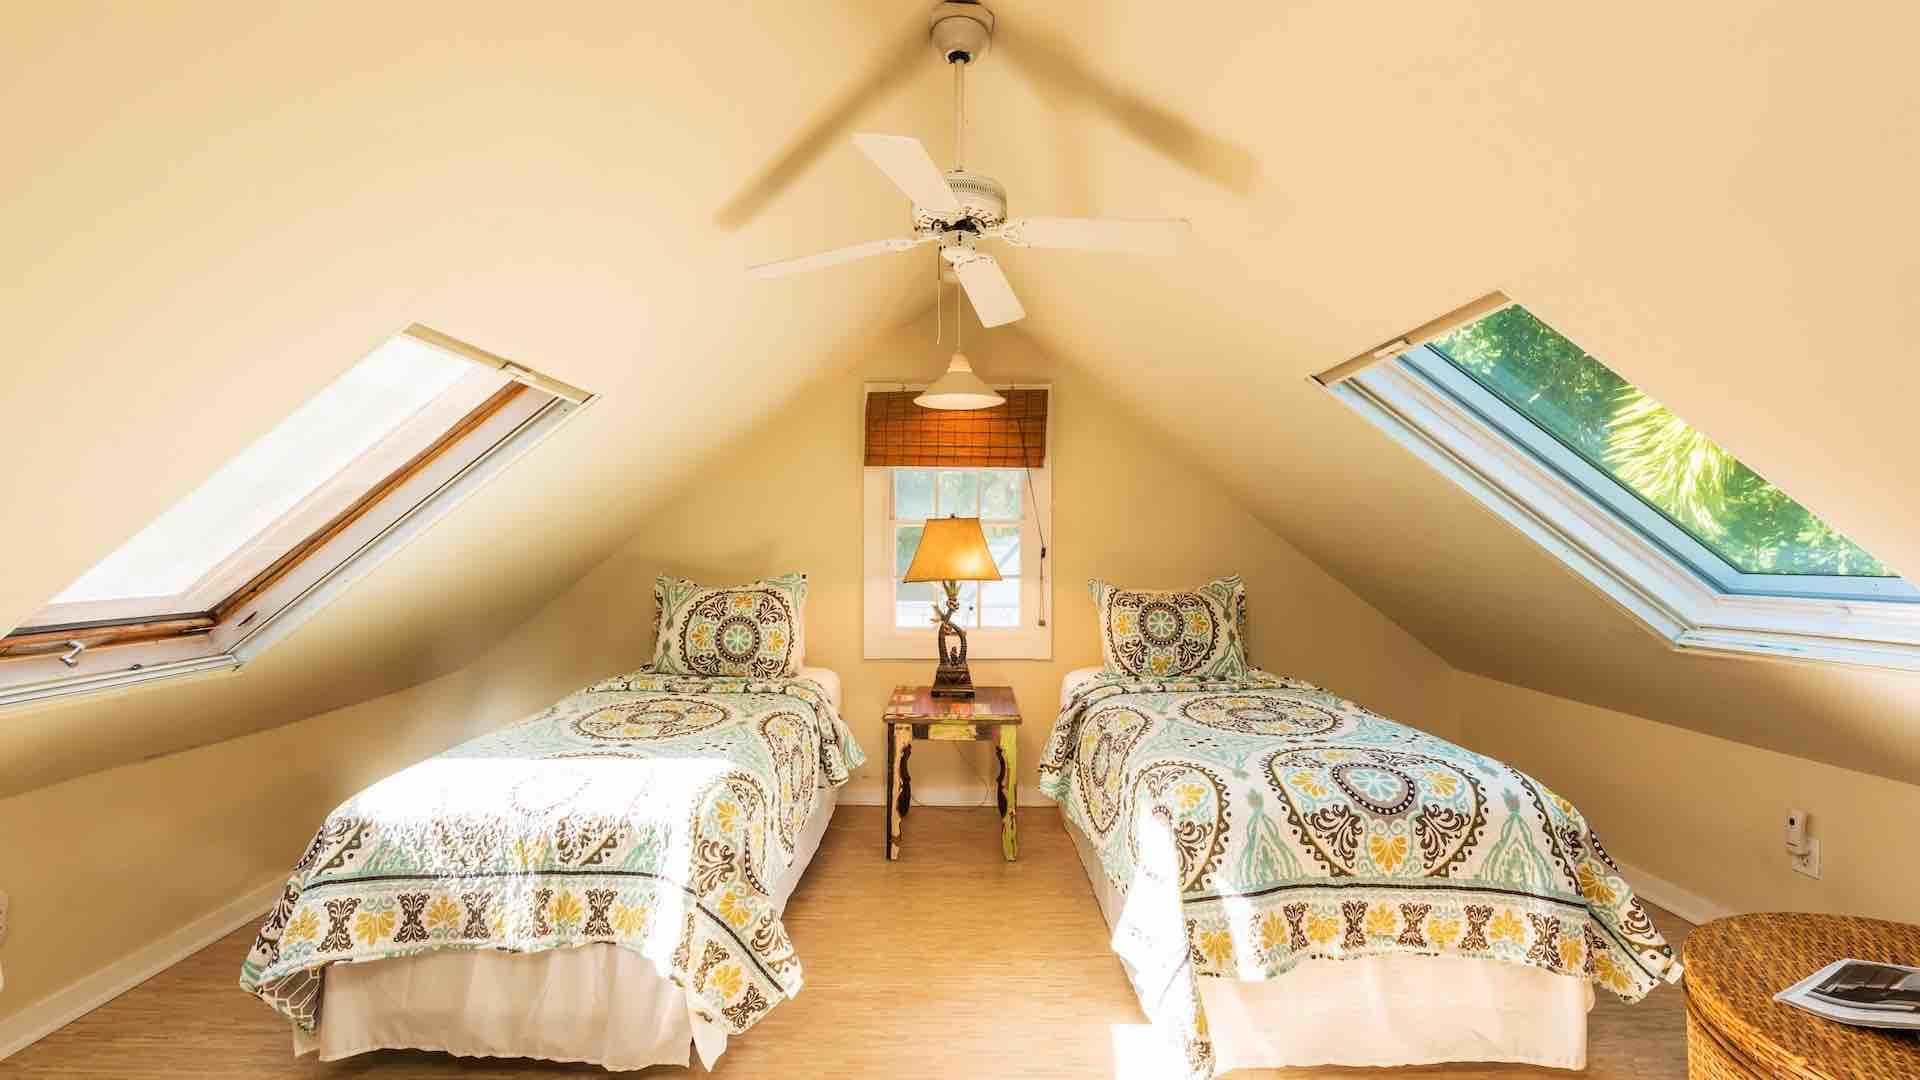 The third bedroom has four large windows with retractable blinds and two fans...